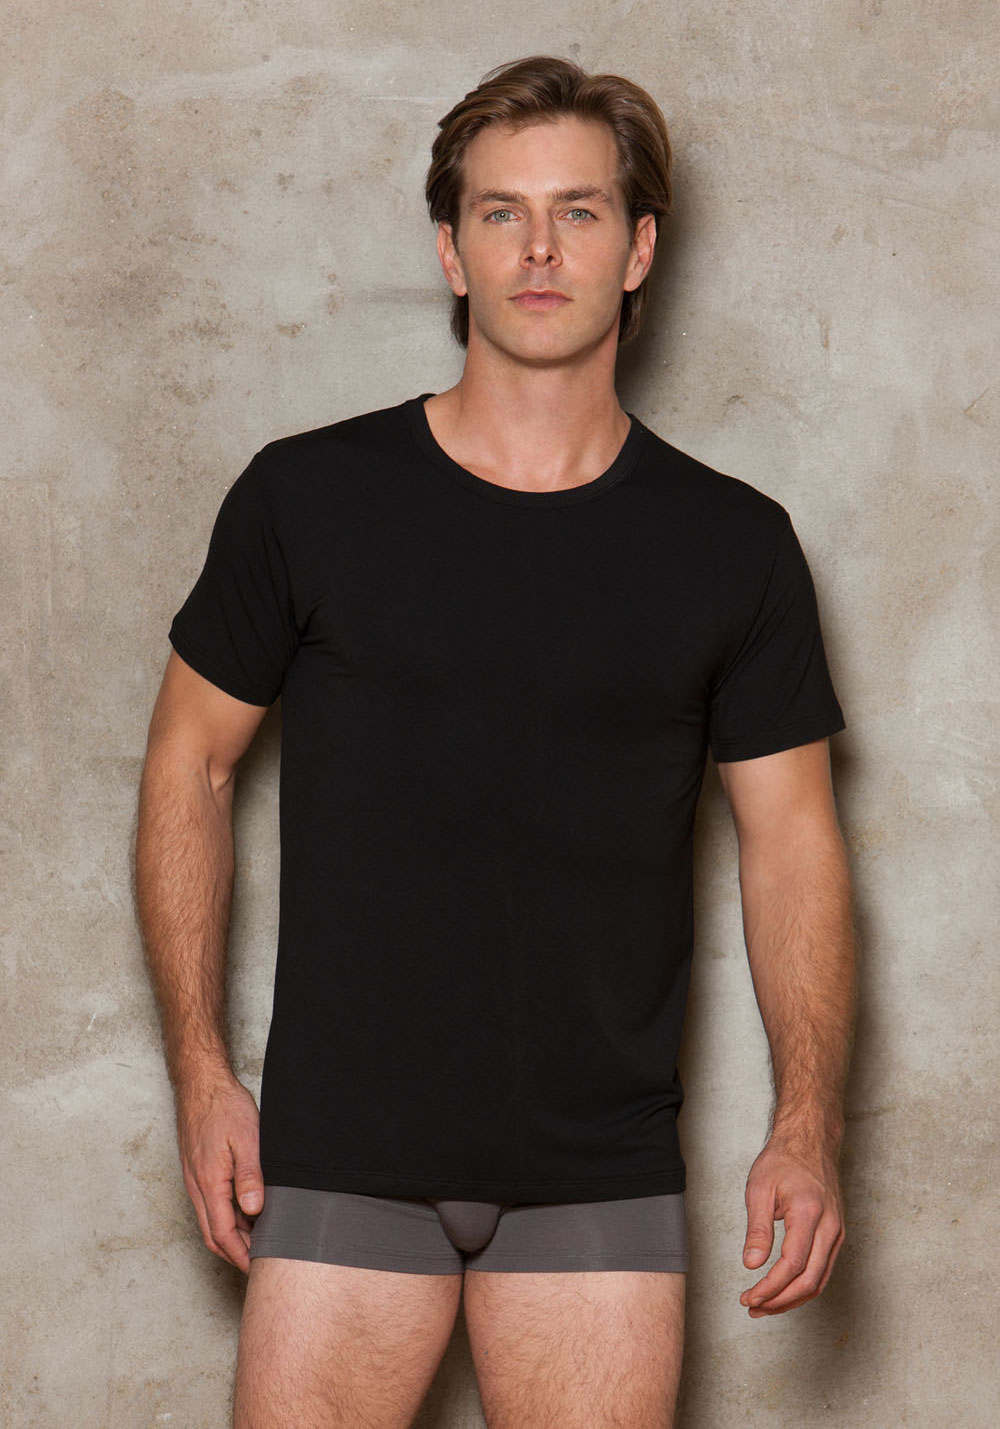 iCollection Lingerie 8807 Men's Modal Crewneck T-Shirt.